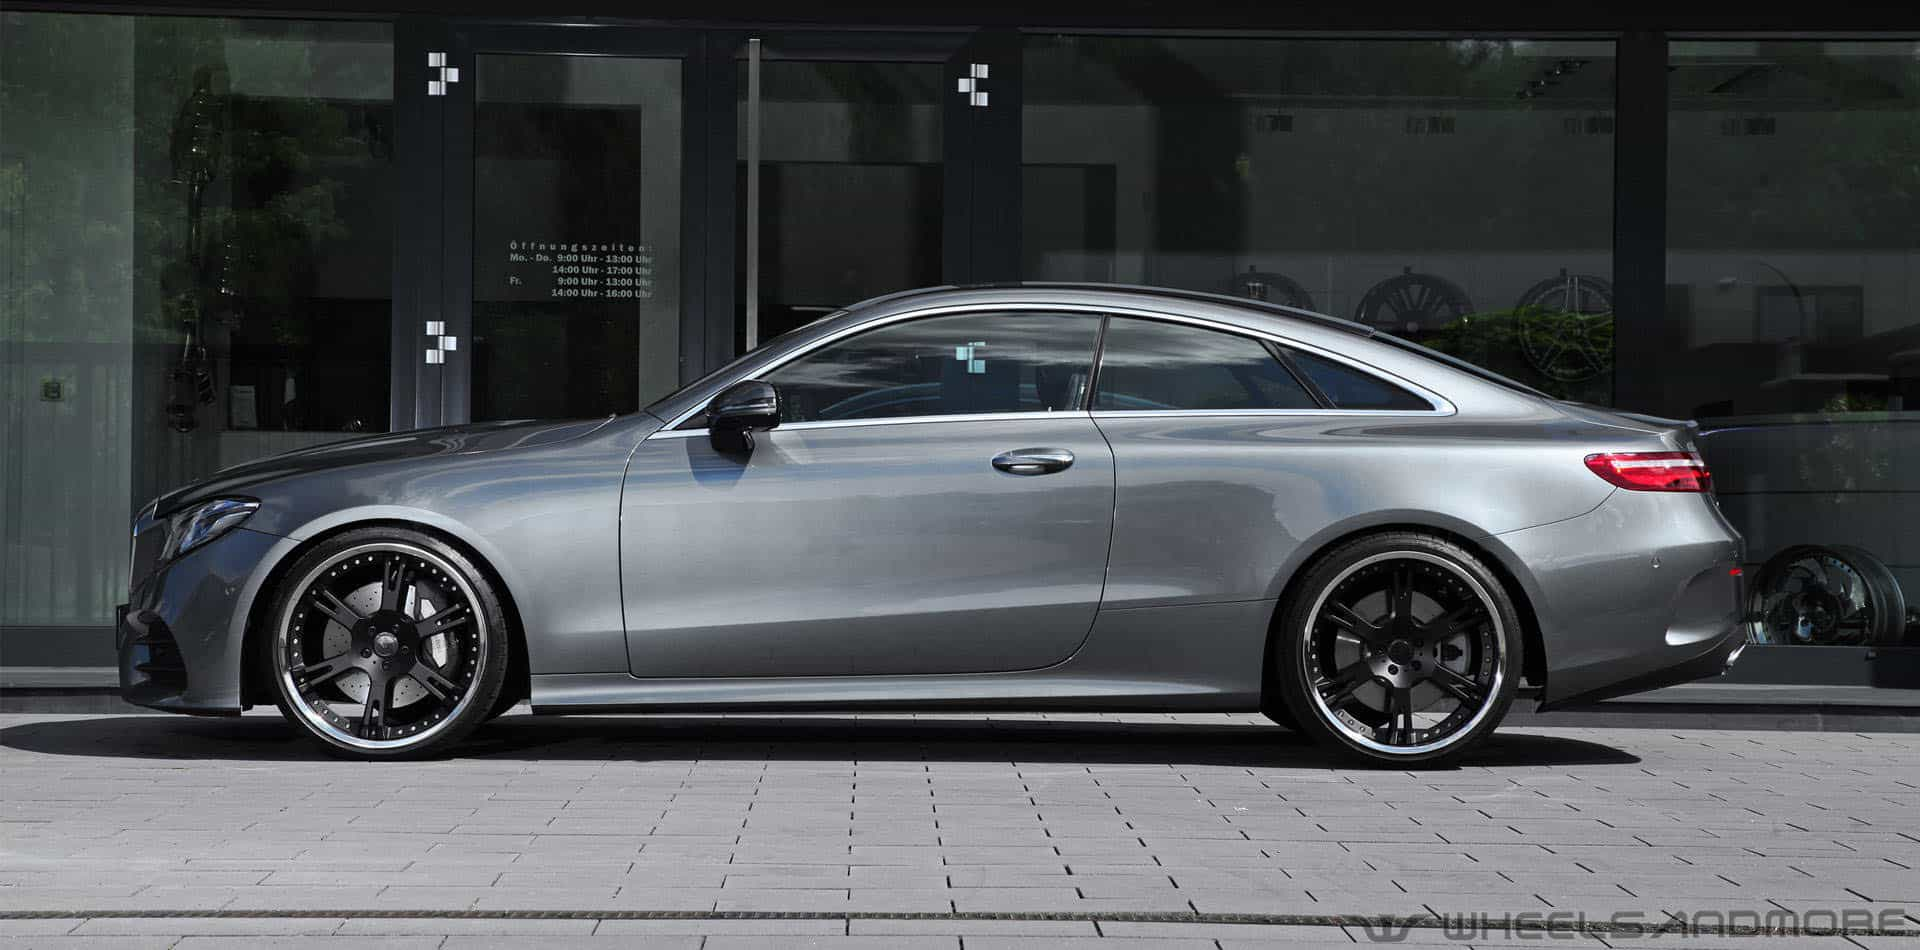 Mercedes W213 E63 AMG tuning, wheels and exhaust | Wheelsandmore